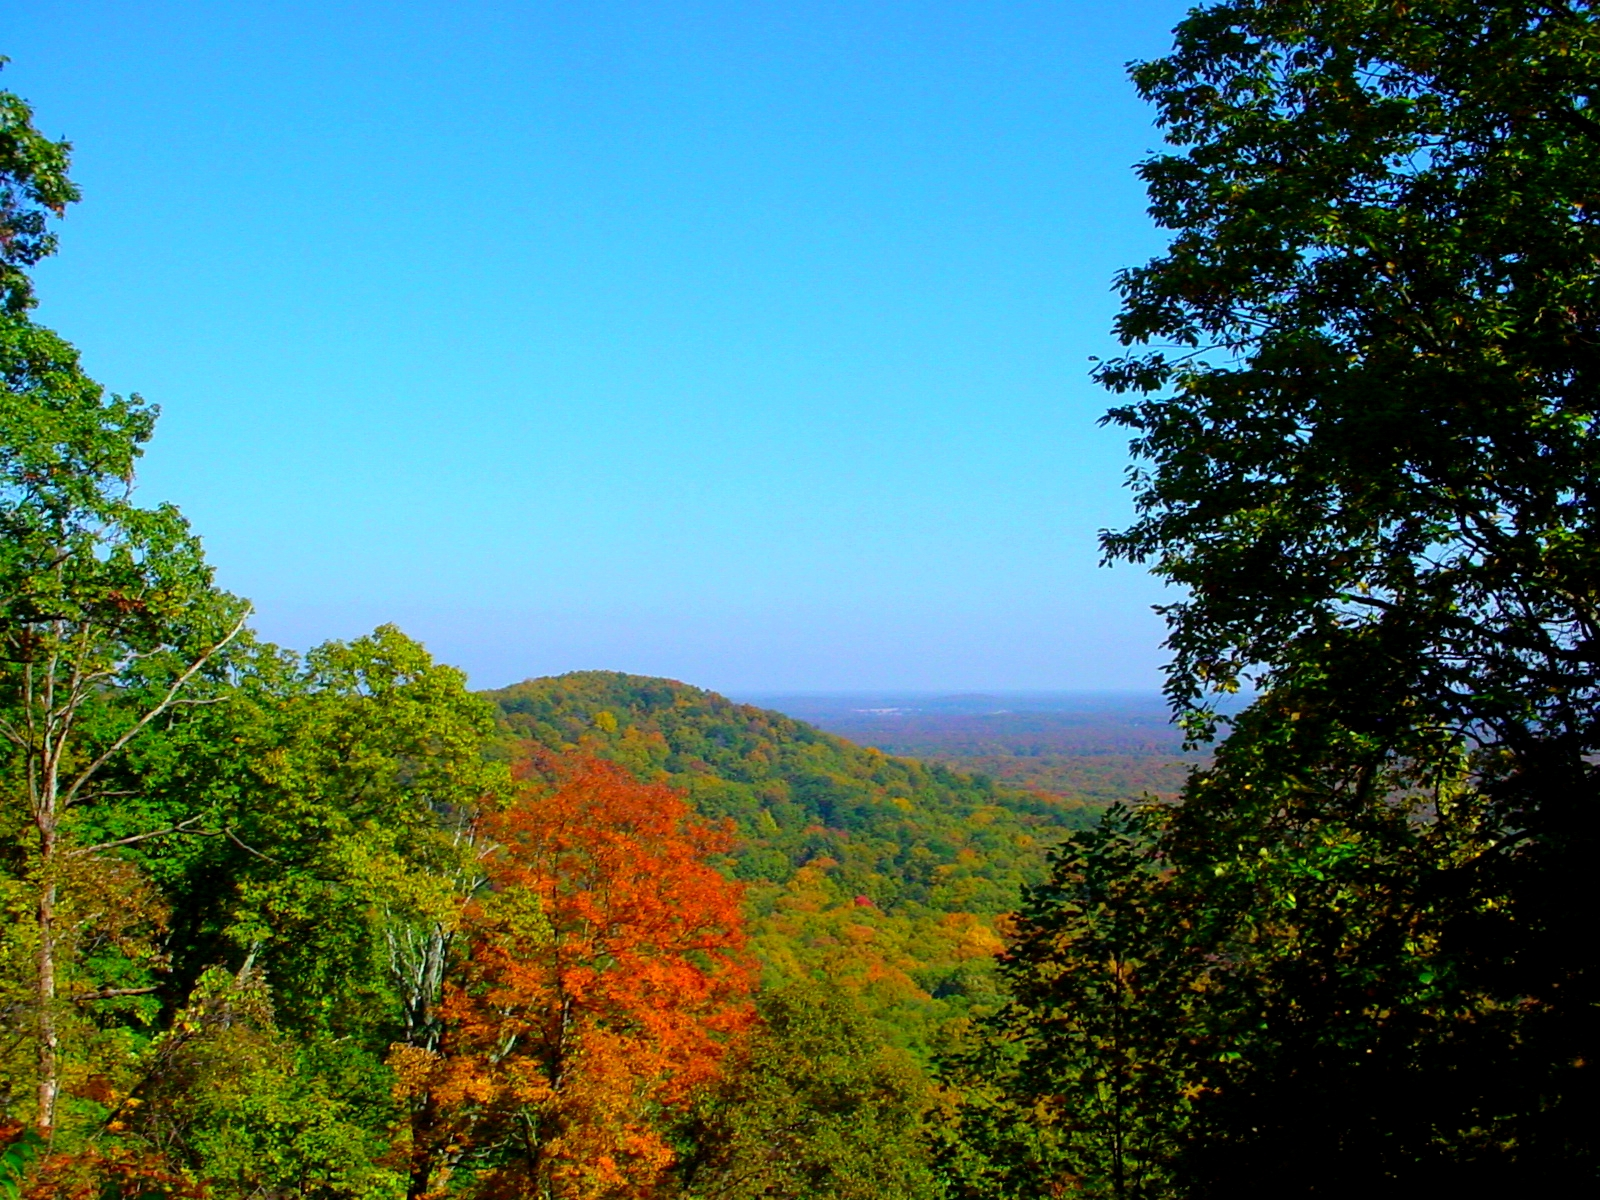 clark state forest